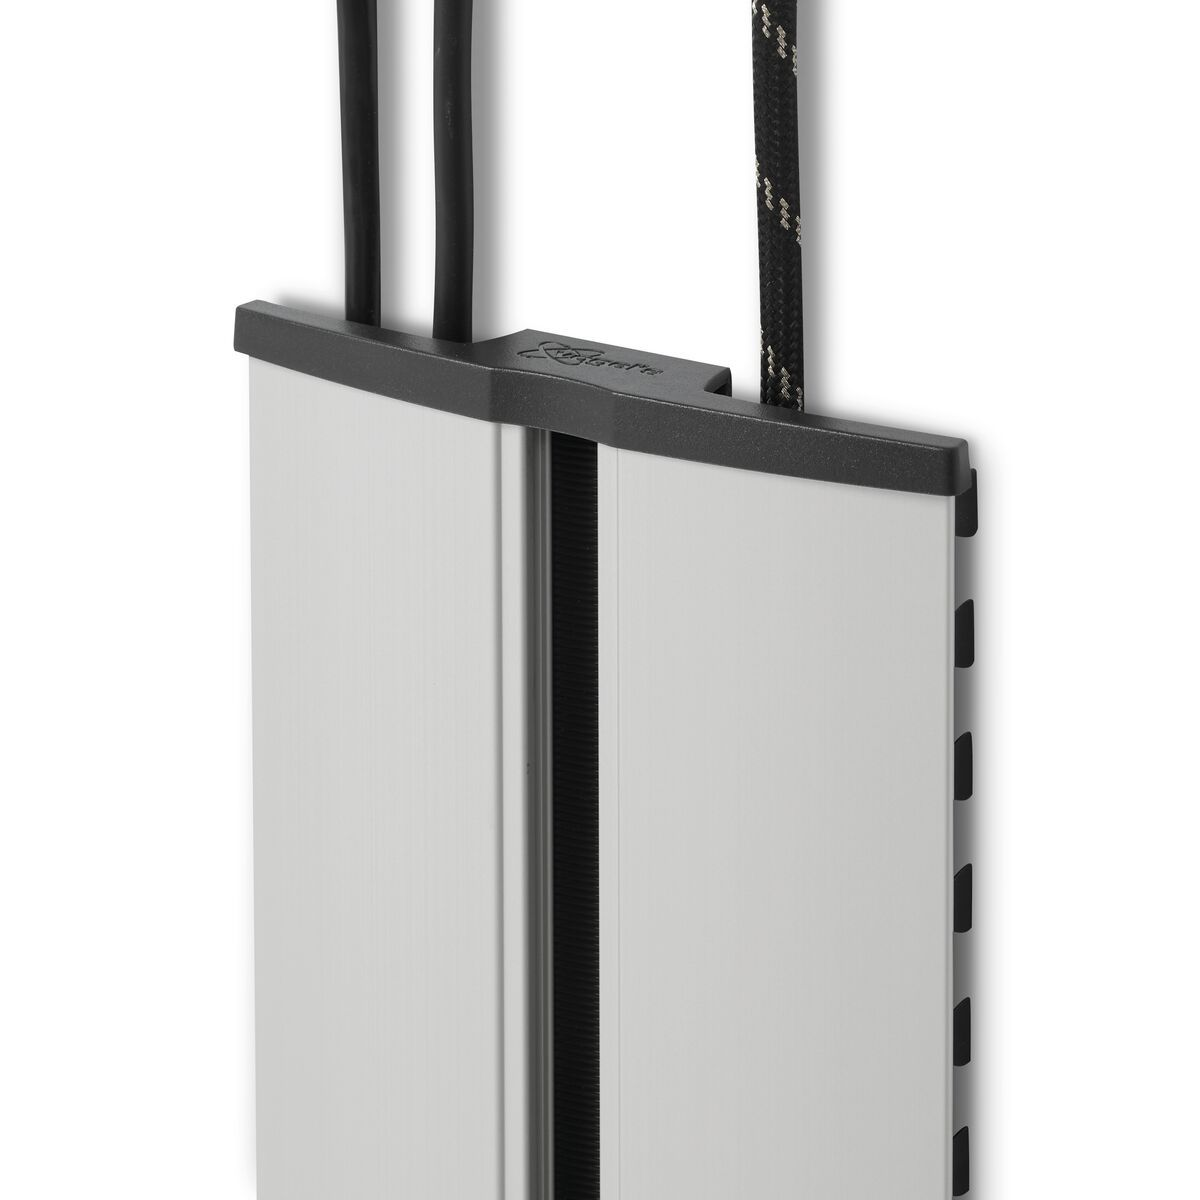 Vogel's CABLE 10 L Cable Column - Max. number of cables to hold: Up to 10 cables - Length: 94 cm - Detail